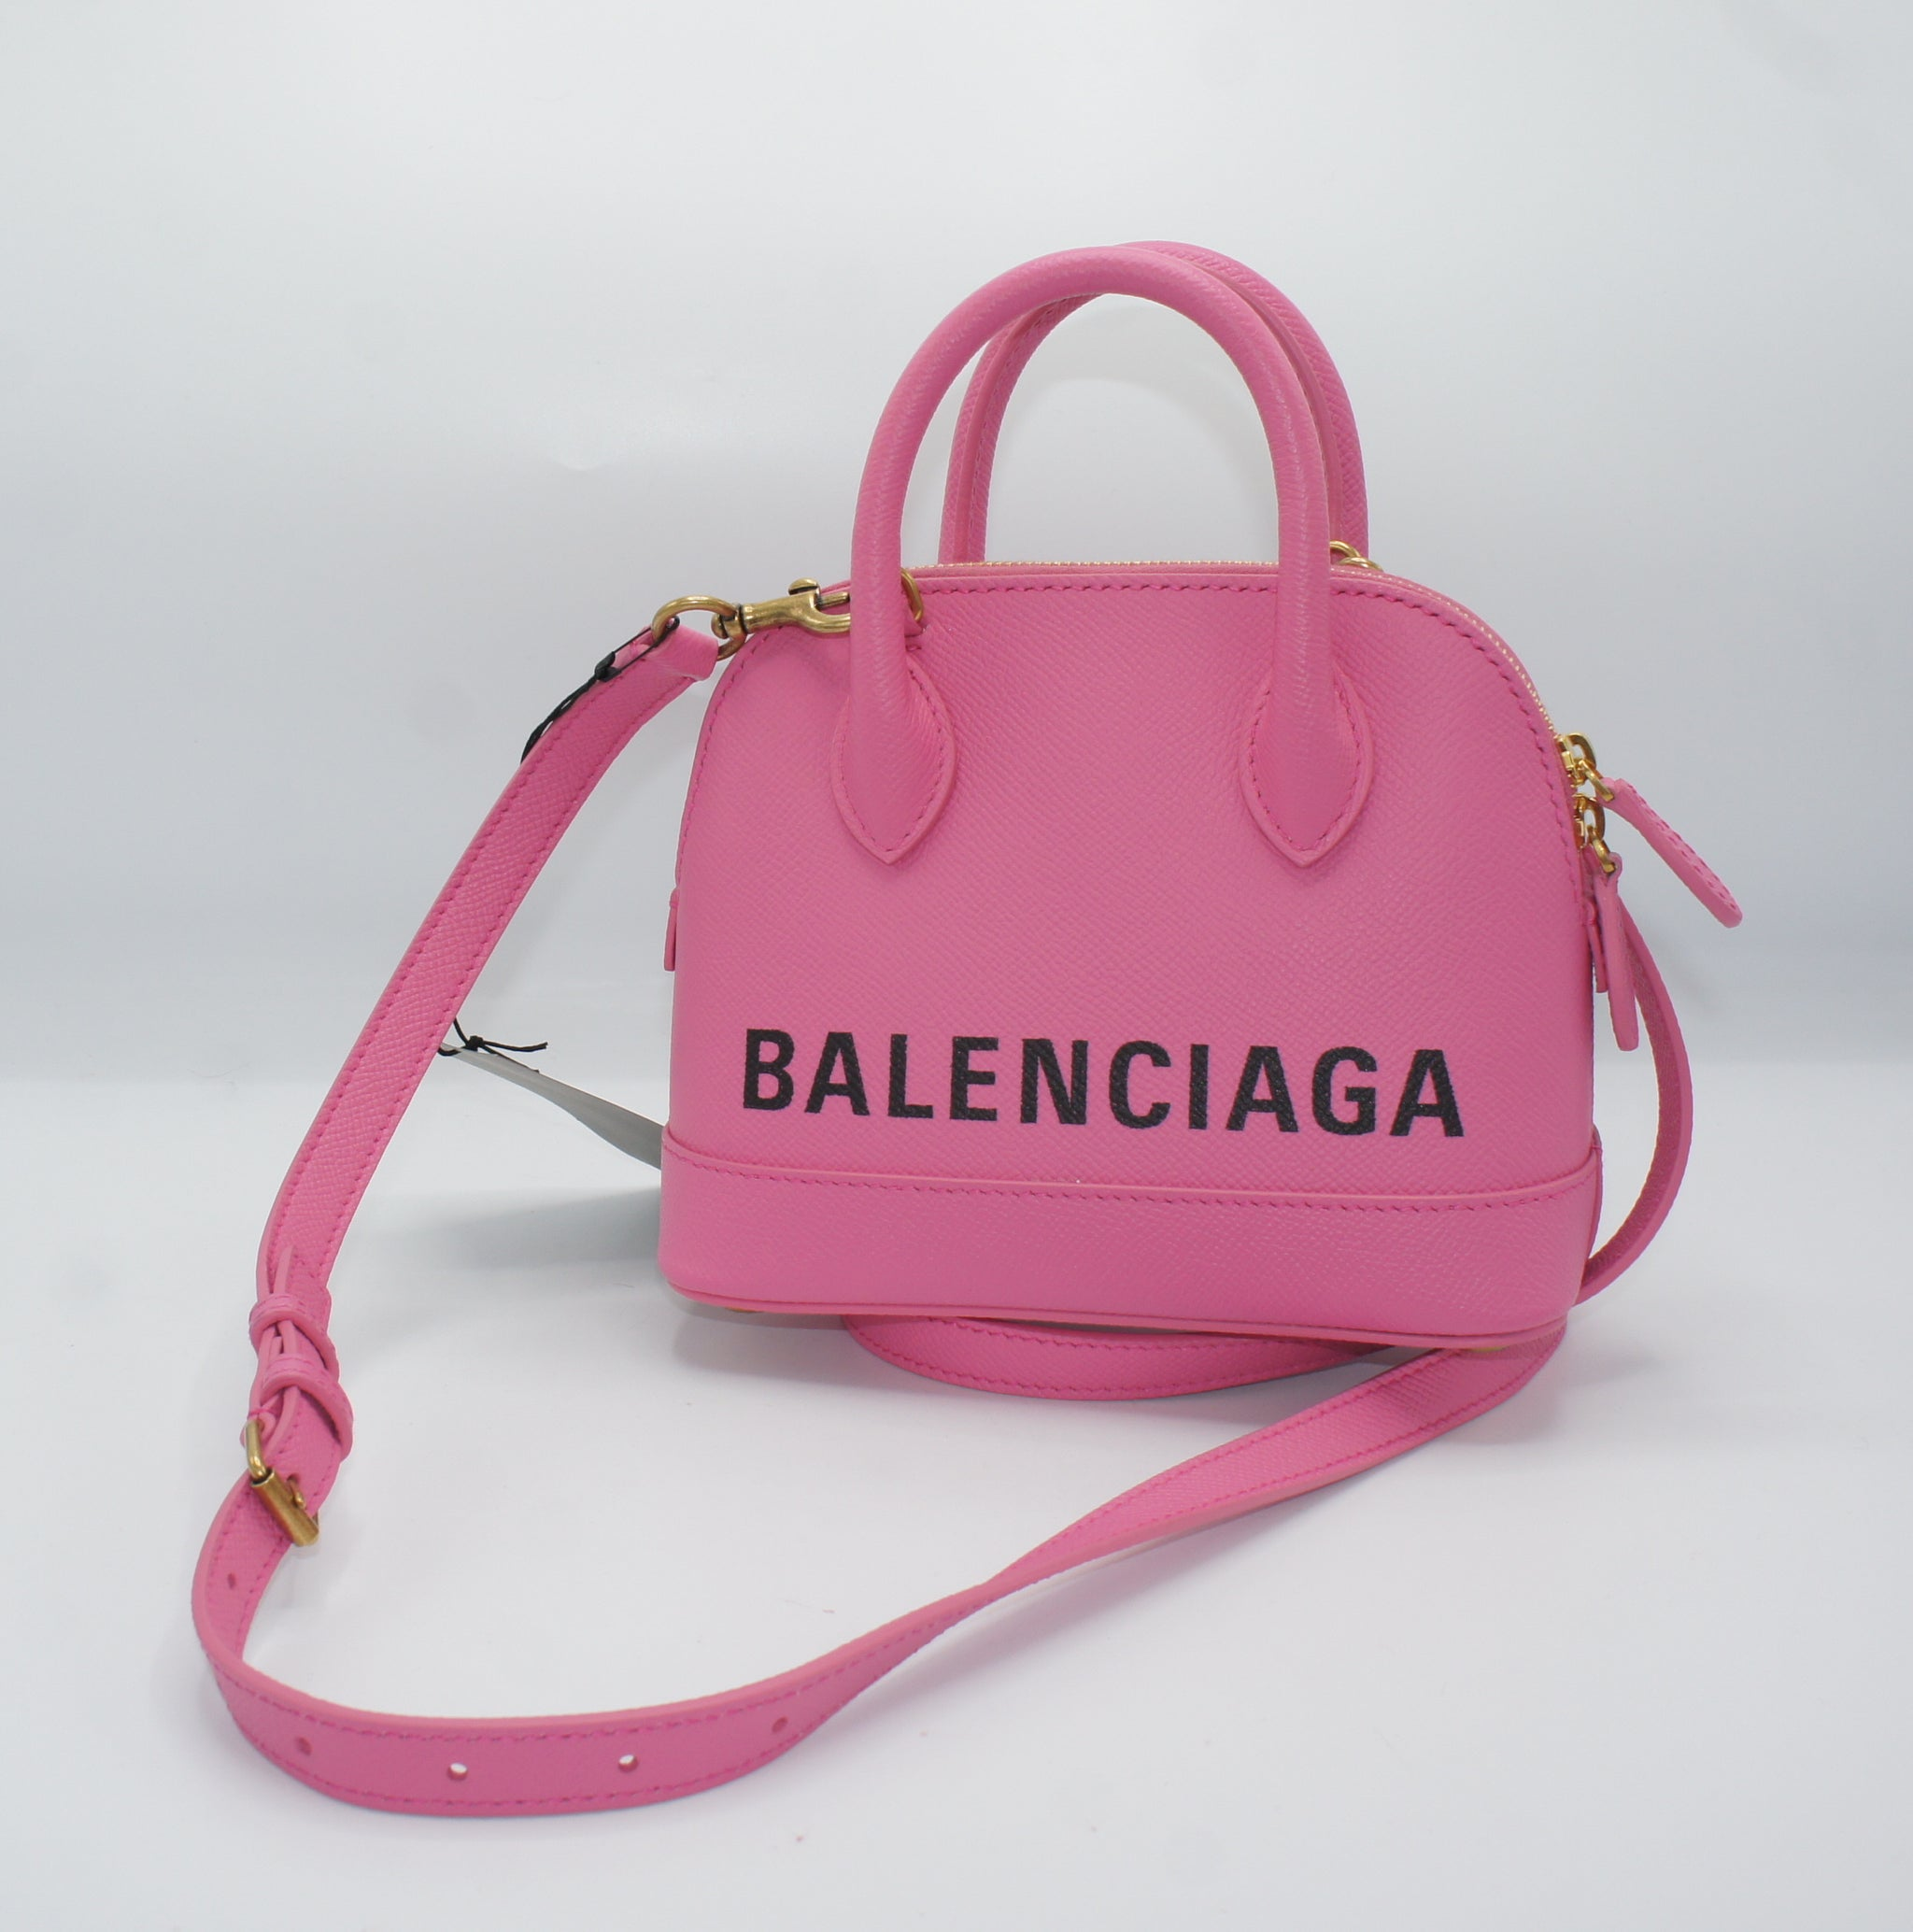 Balenciaga Ville bag - Iconics Preloved Luxury